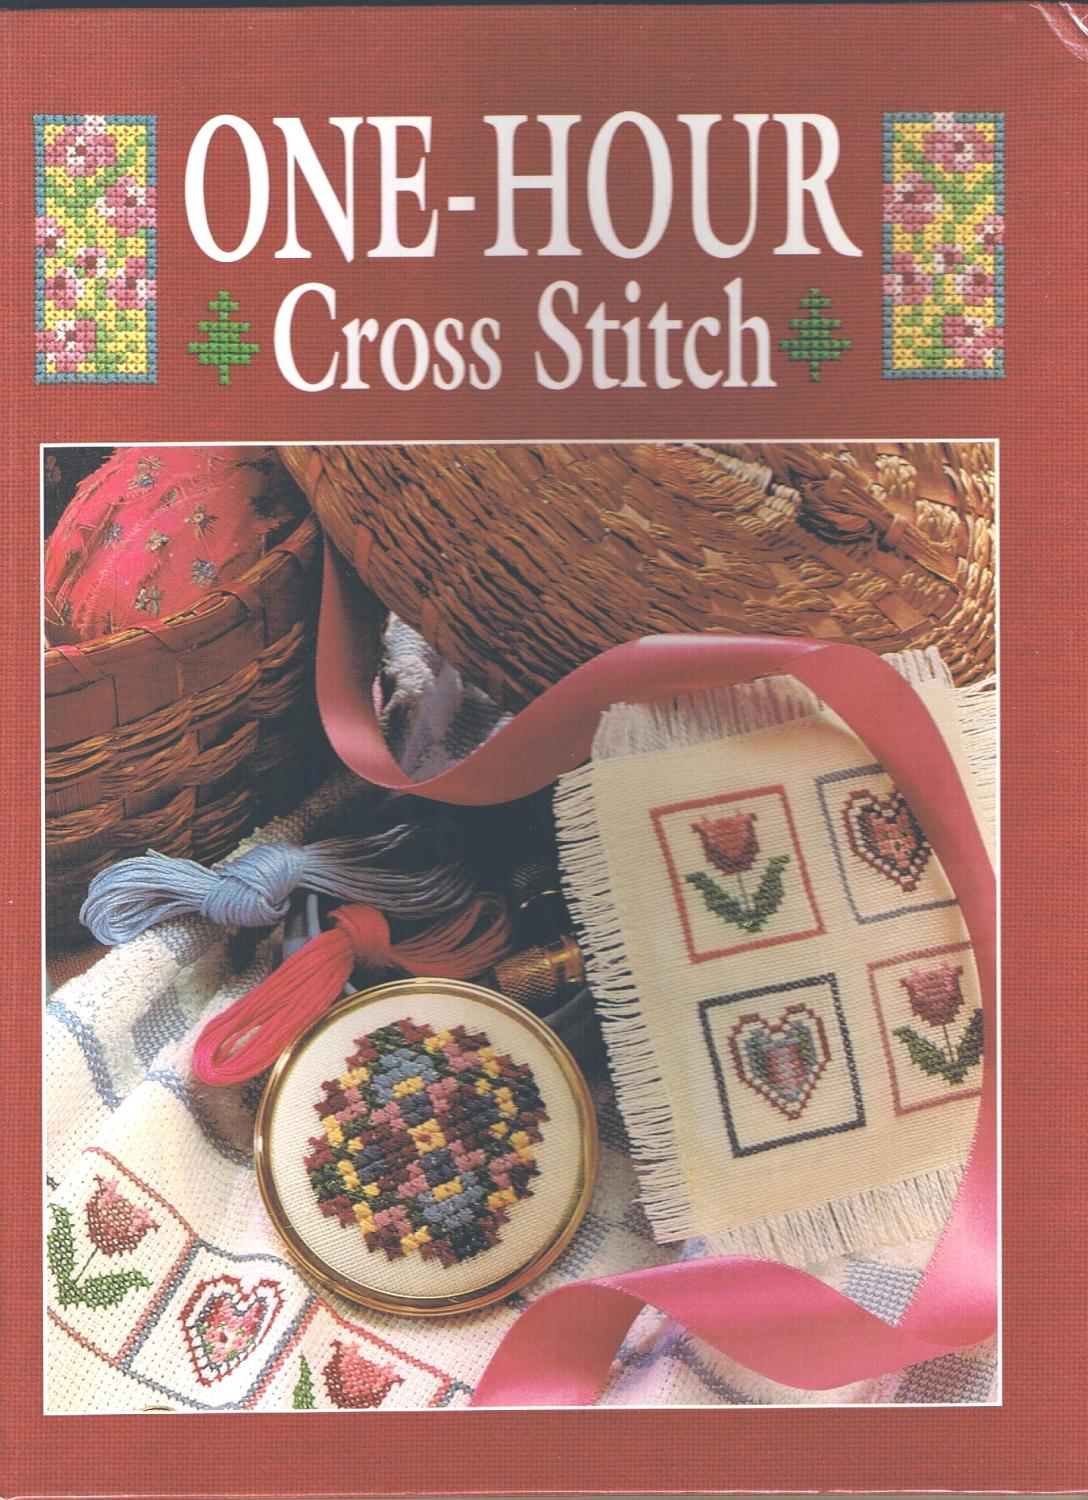 One-Hour Cross Stitch by Sunset Books; Symbol of Excellence